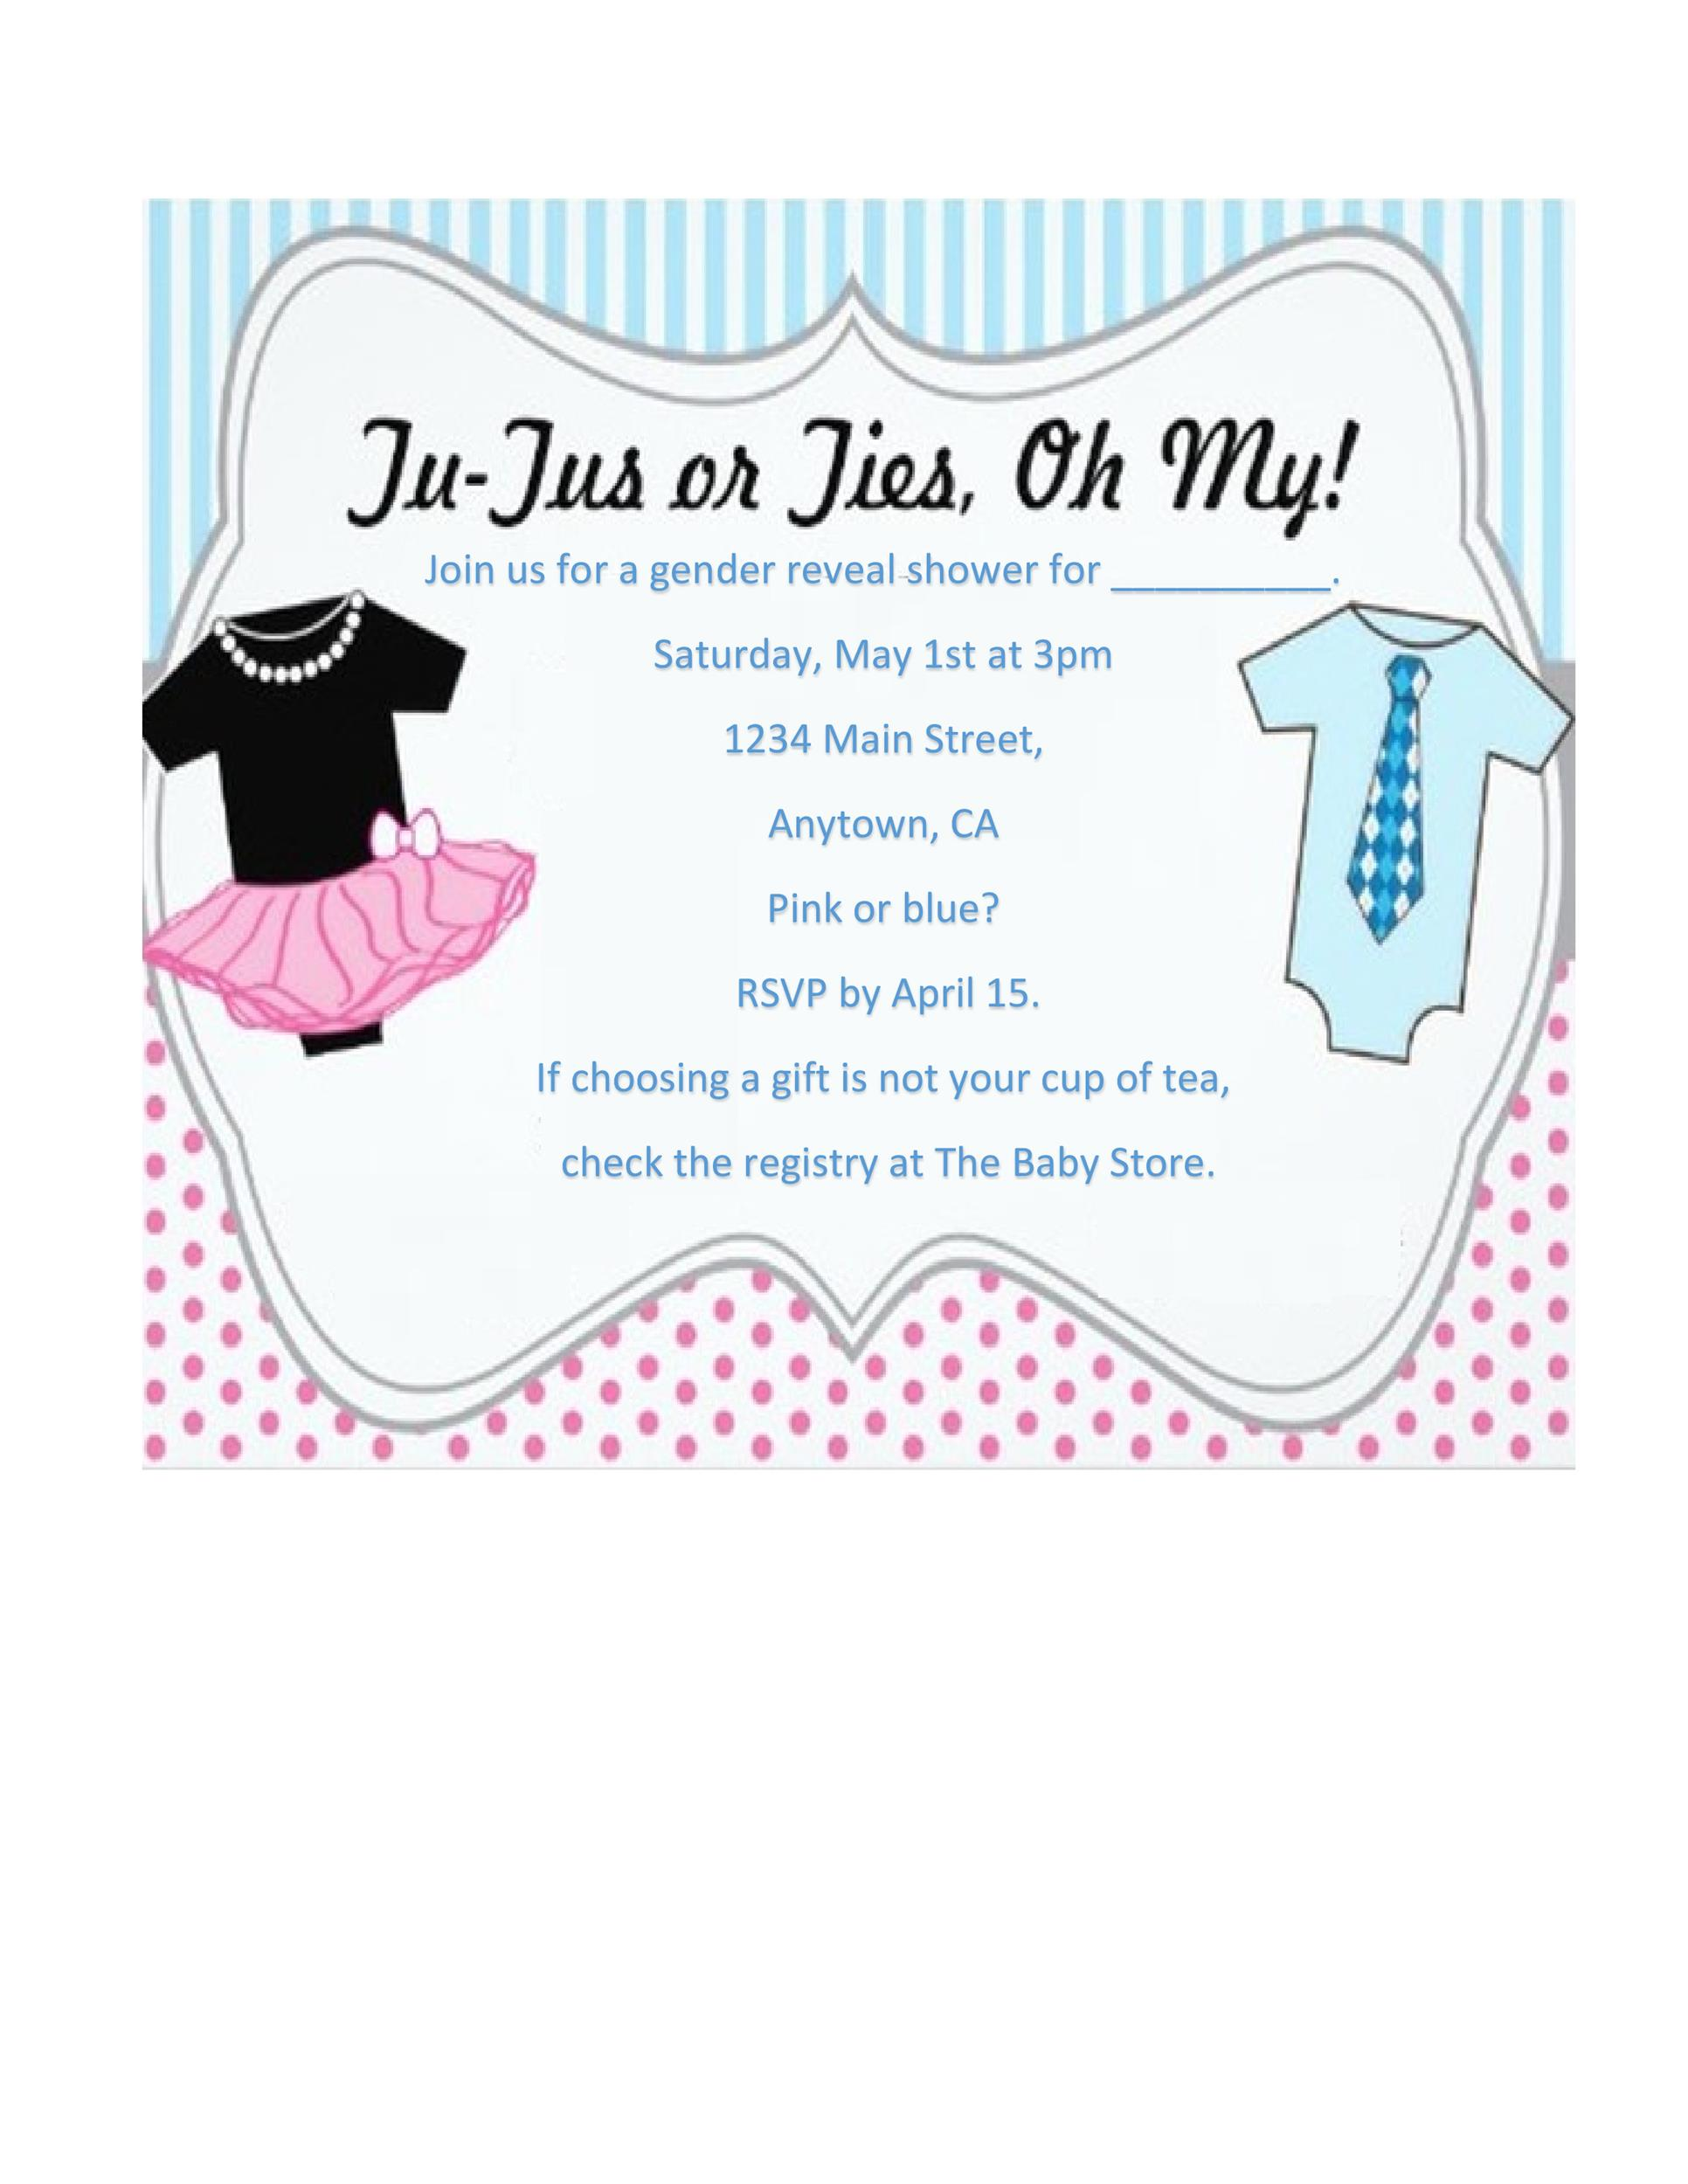 Deguisement Padme Amidala Luxe Star Wars Femme furthermore Gender Reveal Invitations moreover Deguisement Deesse Grecque Femme moreover 2278672 as well Minions Birthday Party. on unique baby shower themes